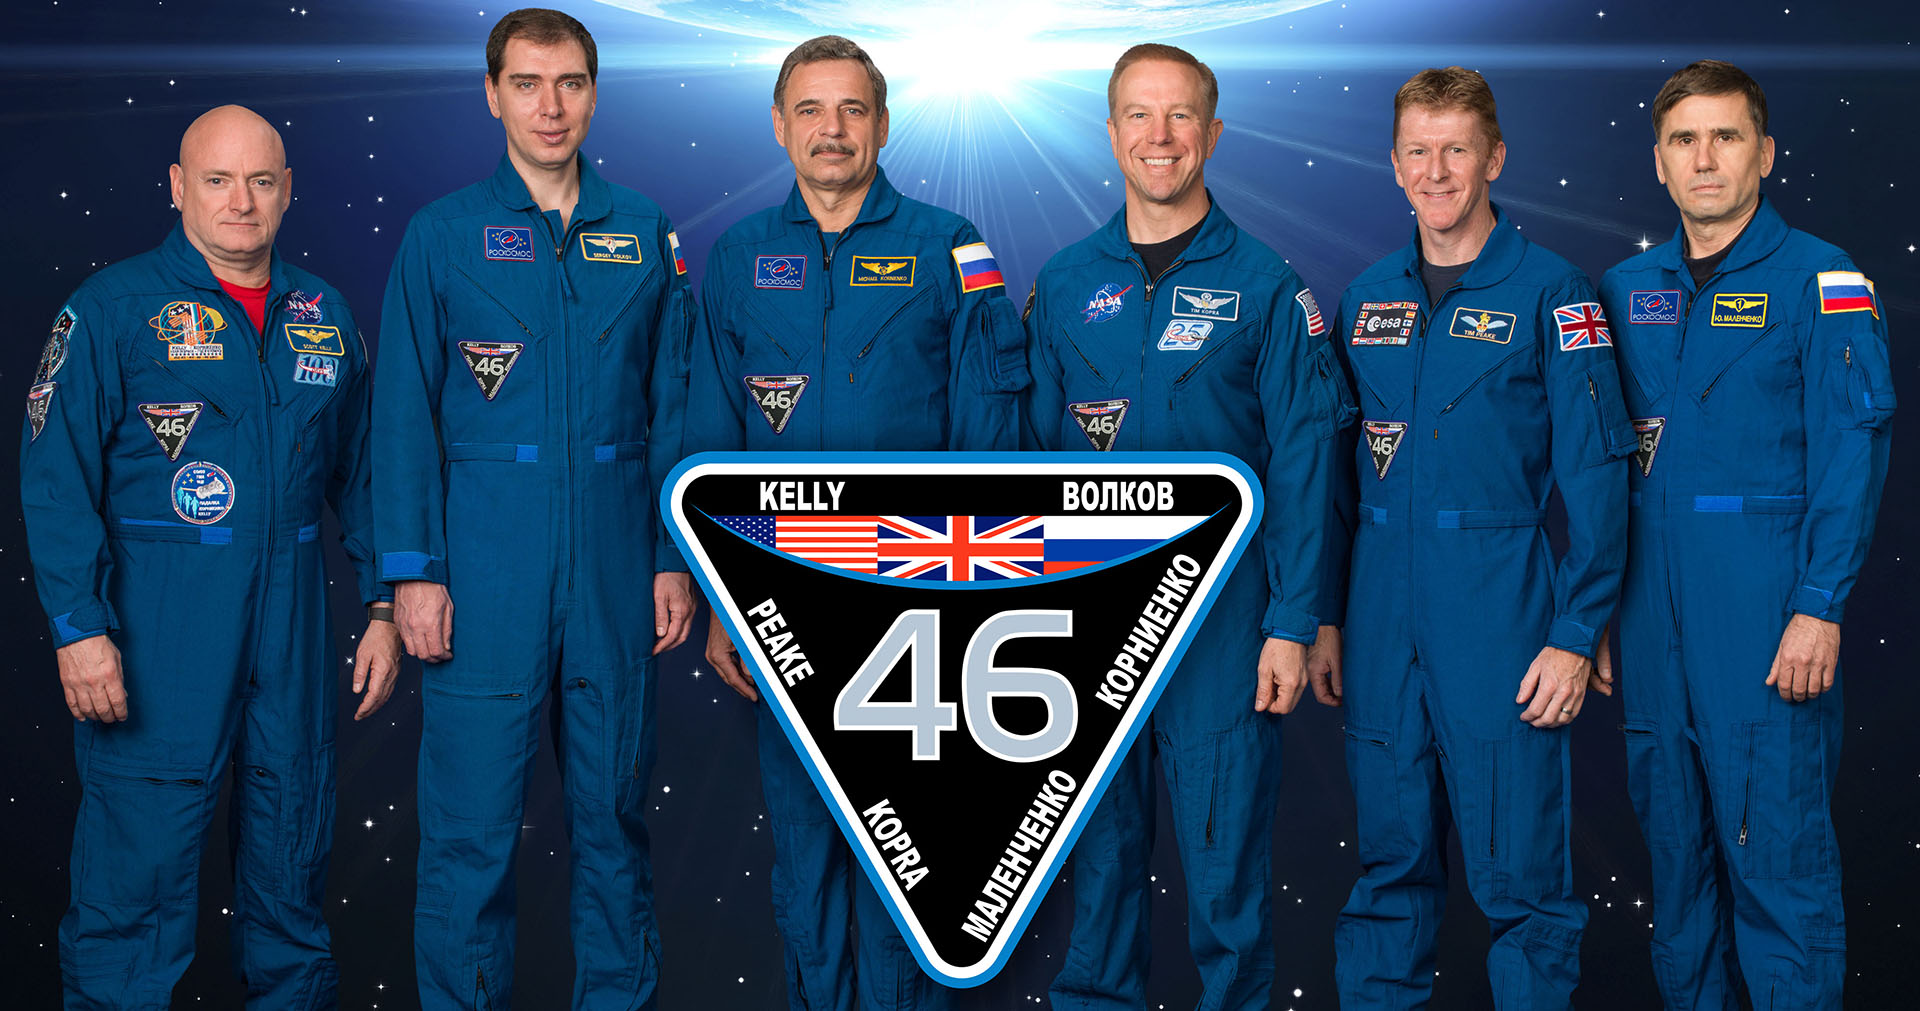 Expedition 46 crew, from left: Scott Kelly, Mikhail Kornienko, Sergey Volkov, Tim Peake, Tim Kopra and Yuri Malenchenko.